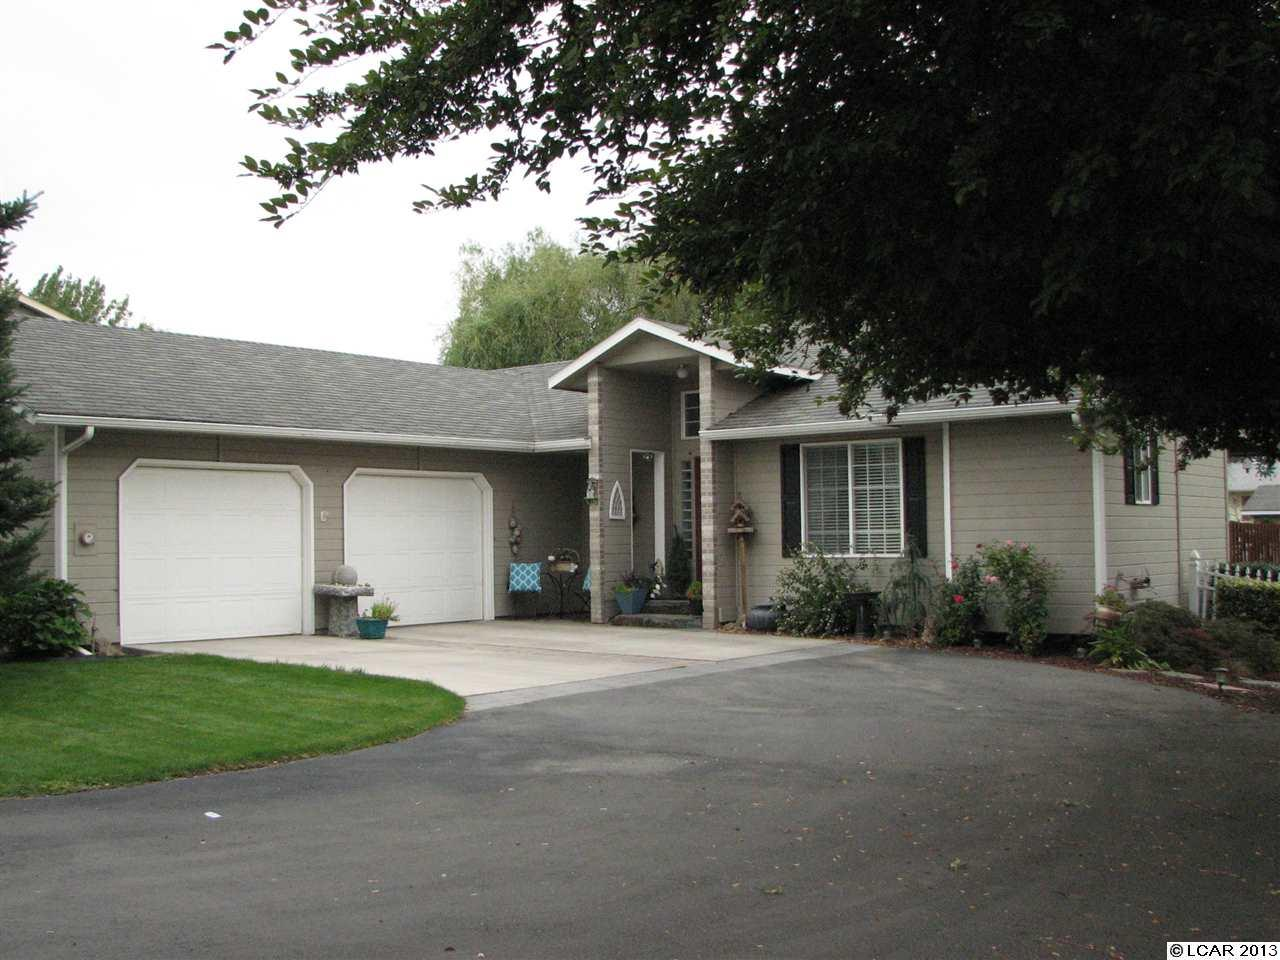 2548 18th St, Clarkston, WA 99403